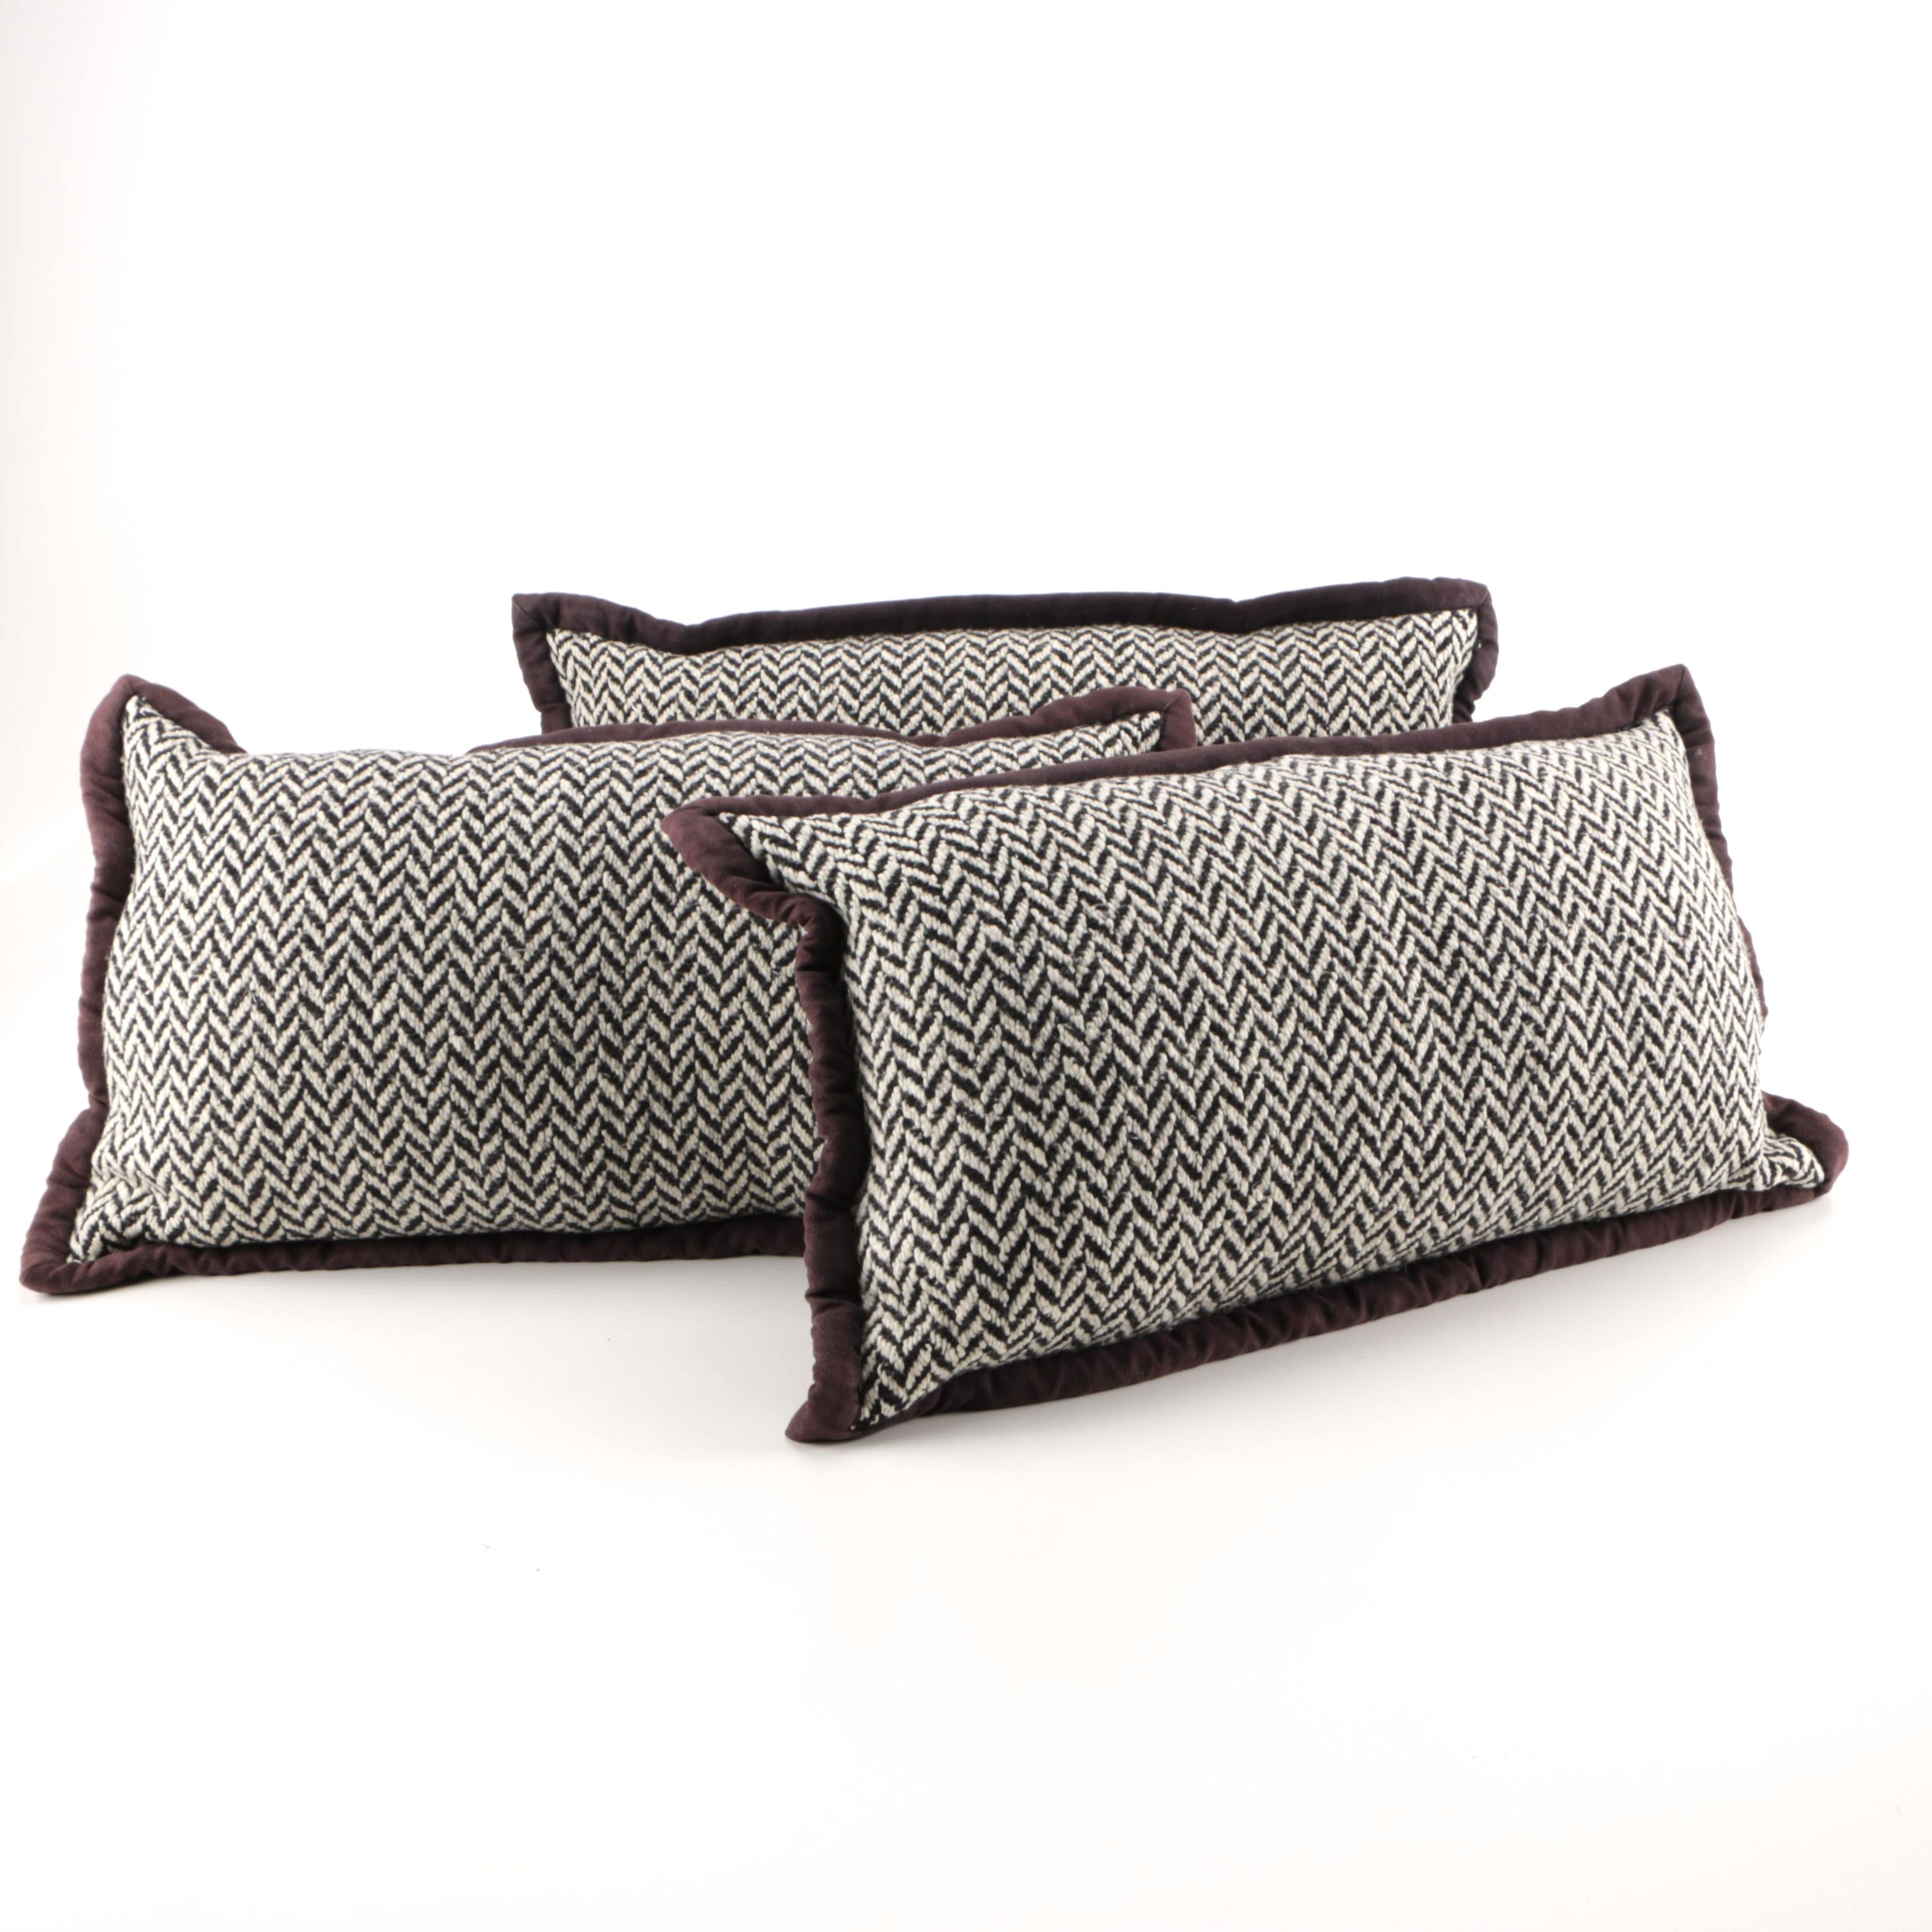 Black and White Accent Pillows